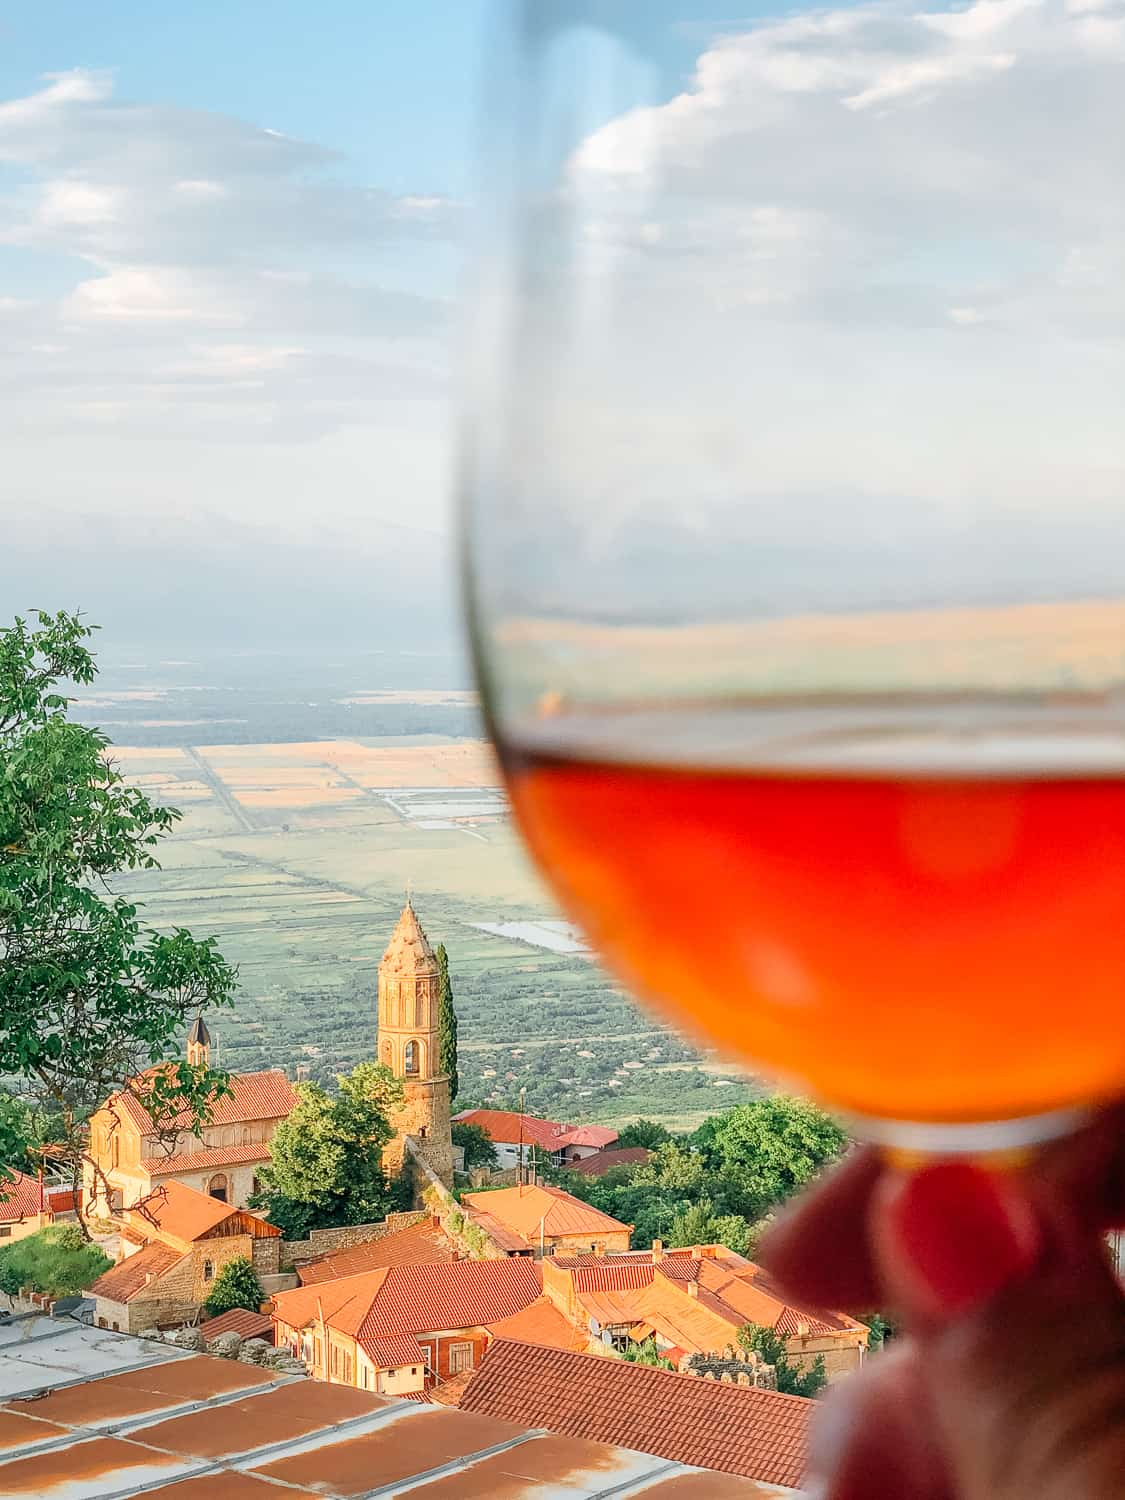 amber wine with a beautiful town in the distance